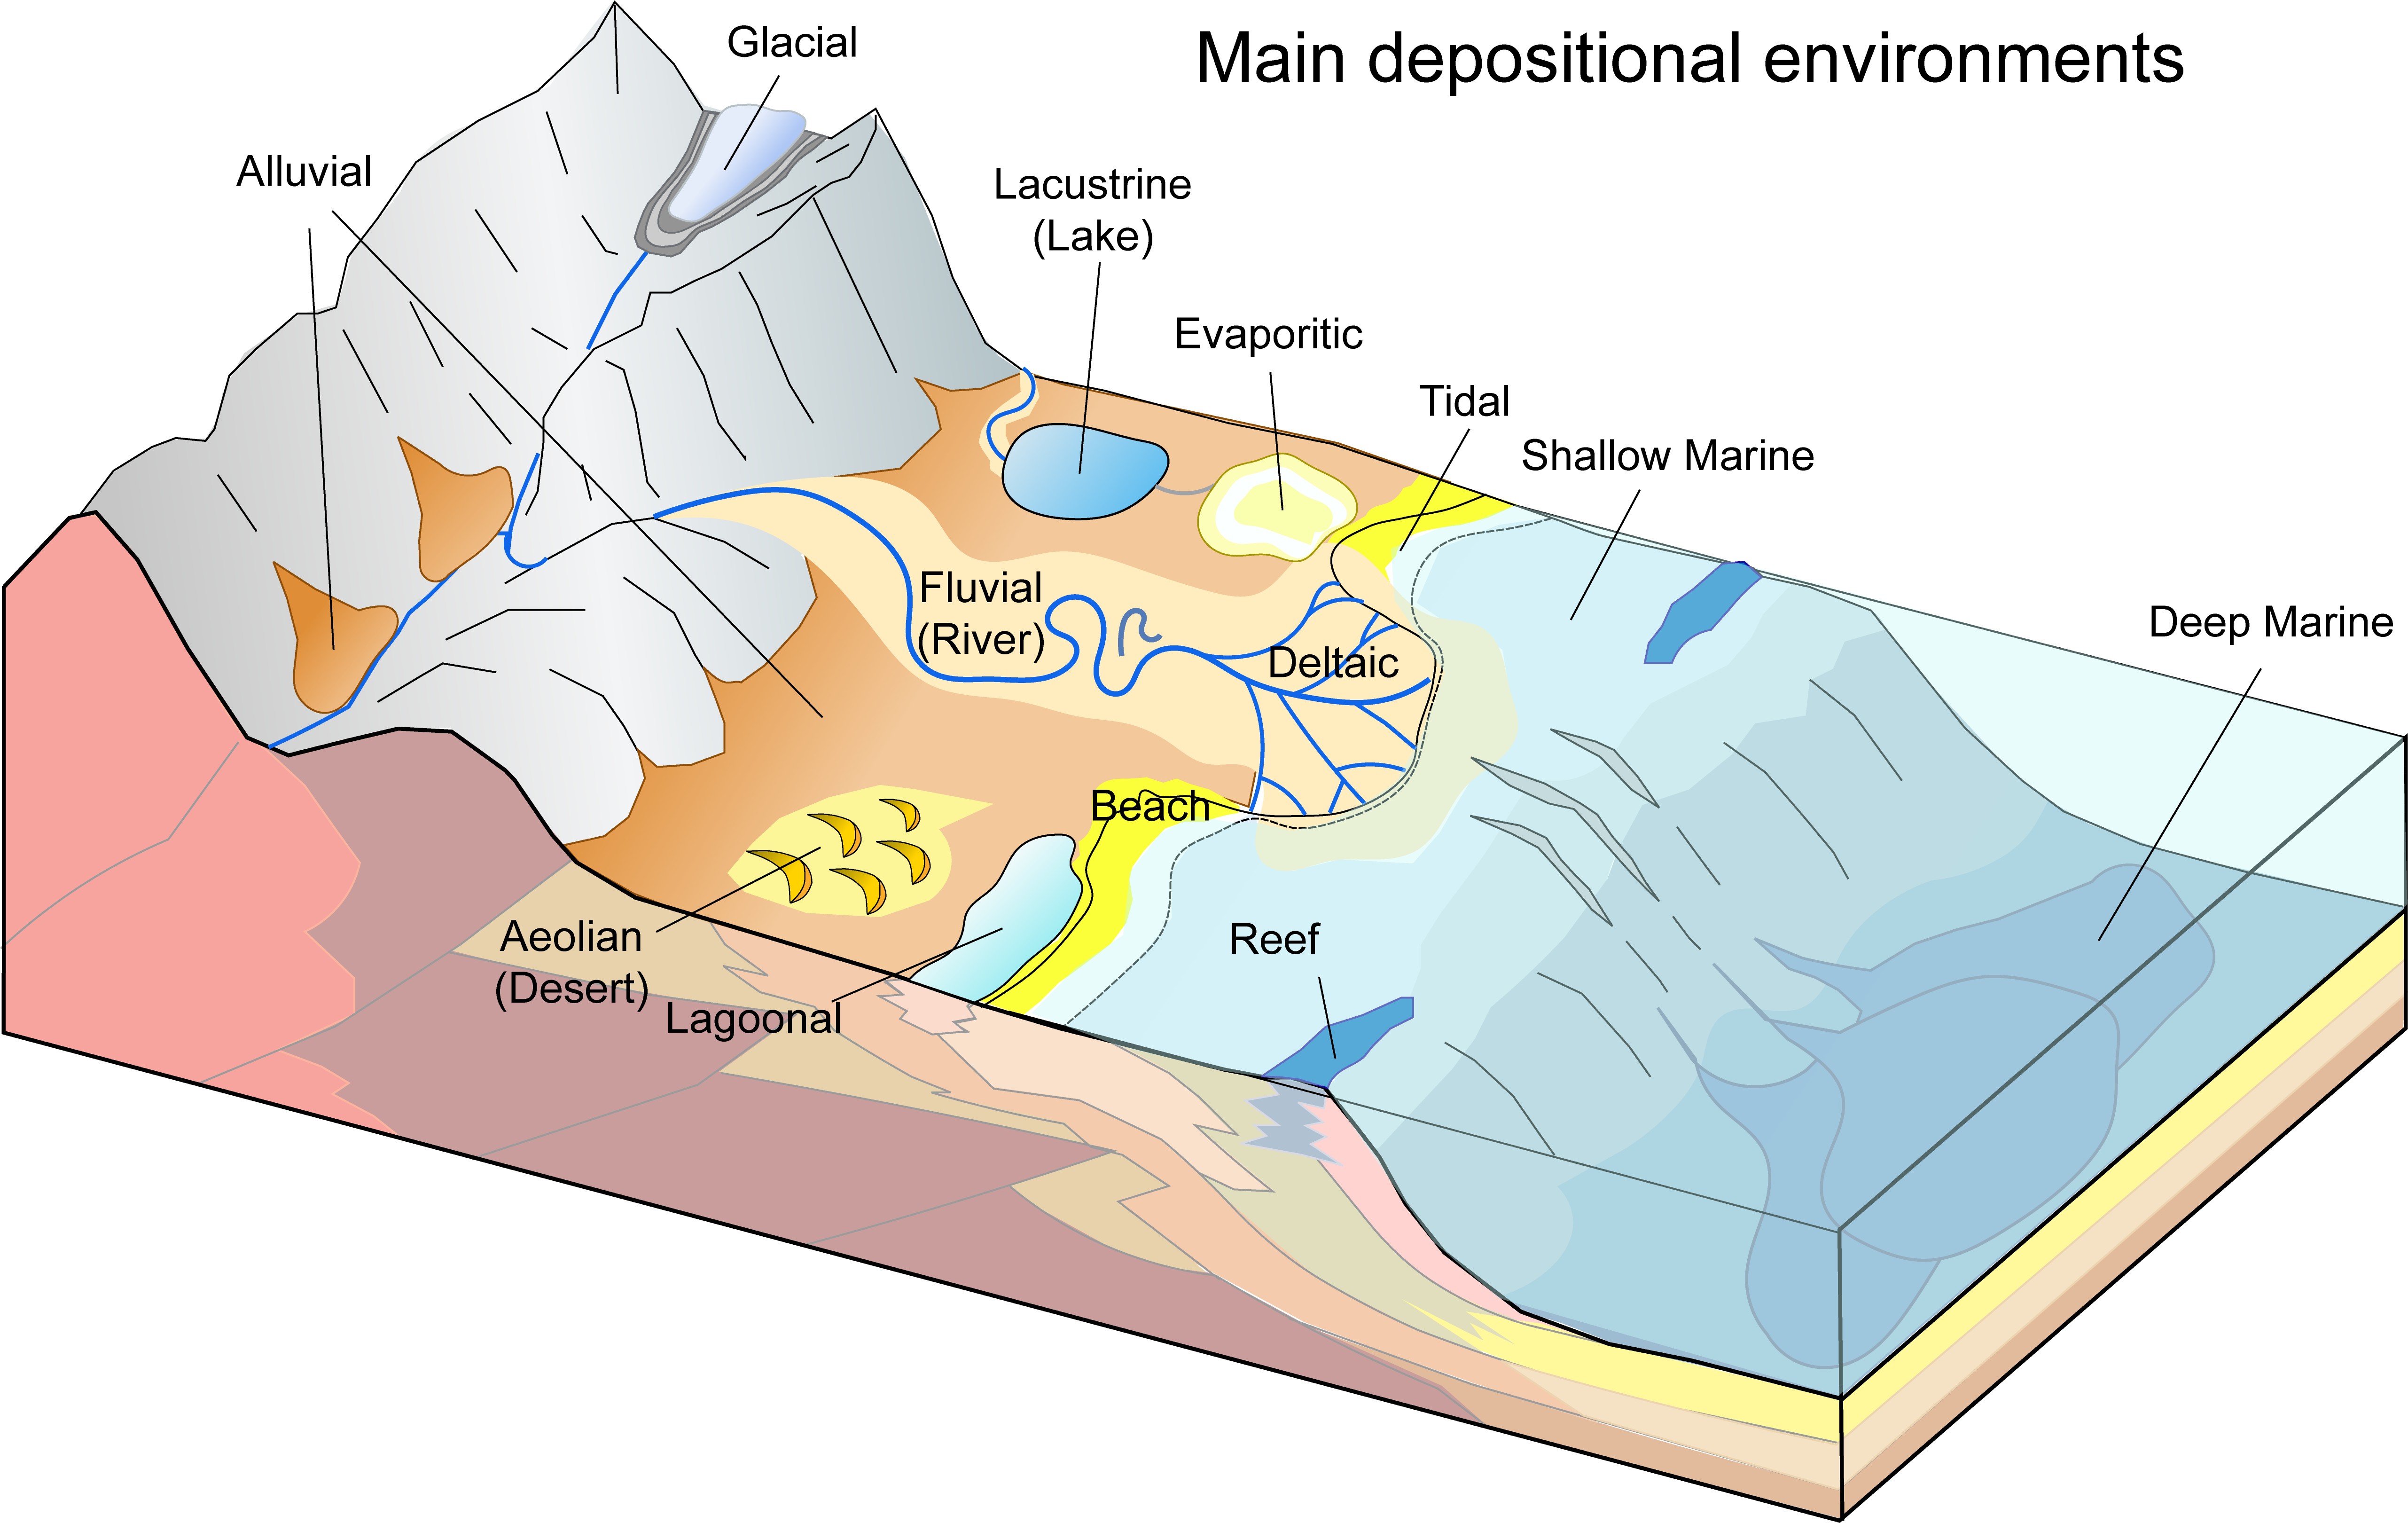 Block diagram of primary depositional environments of sediments.